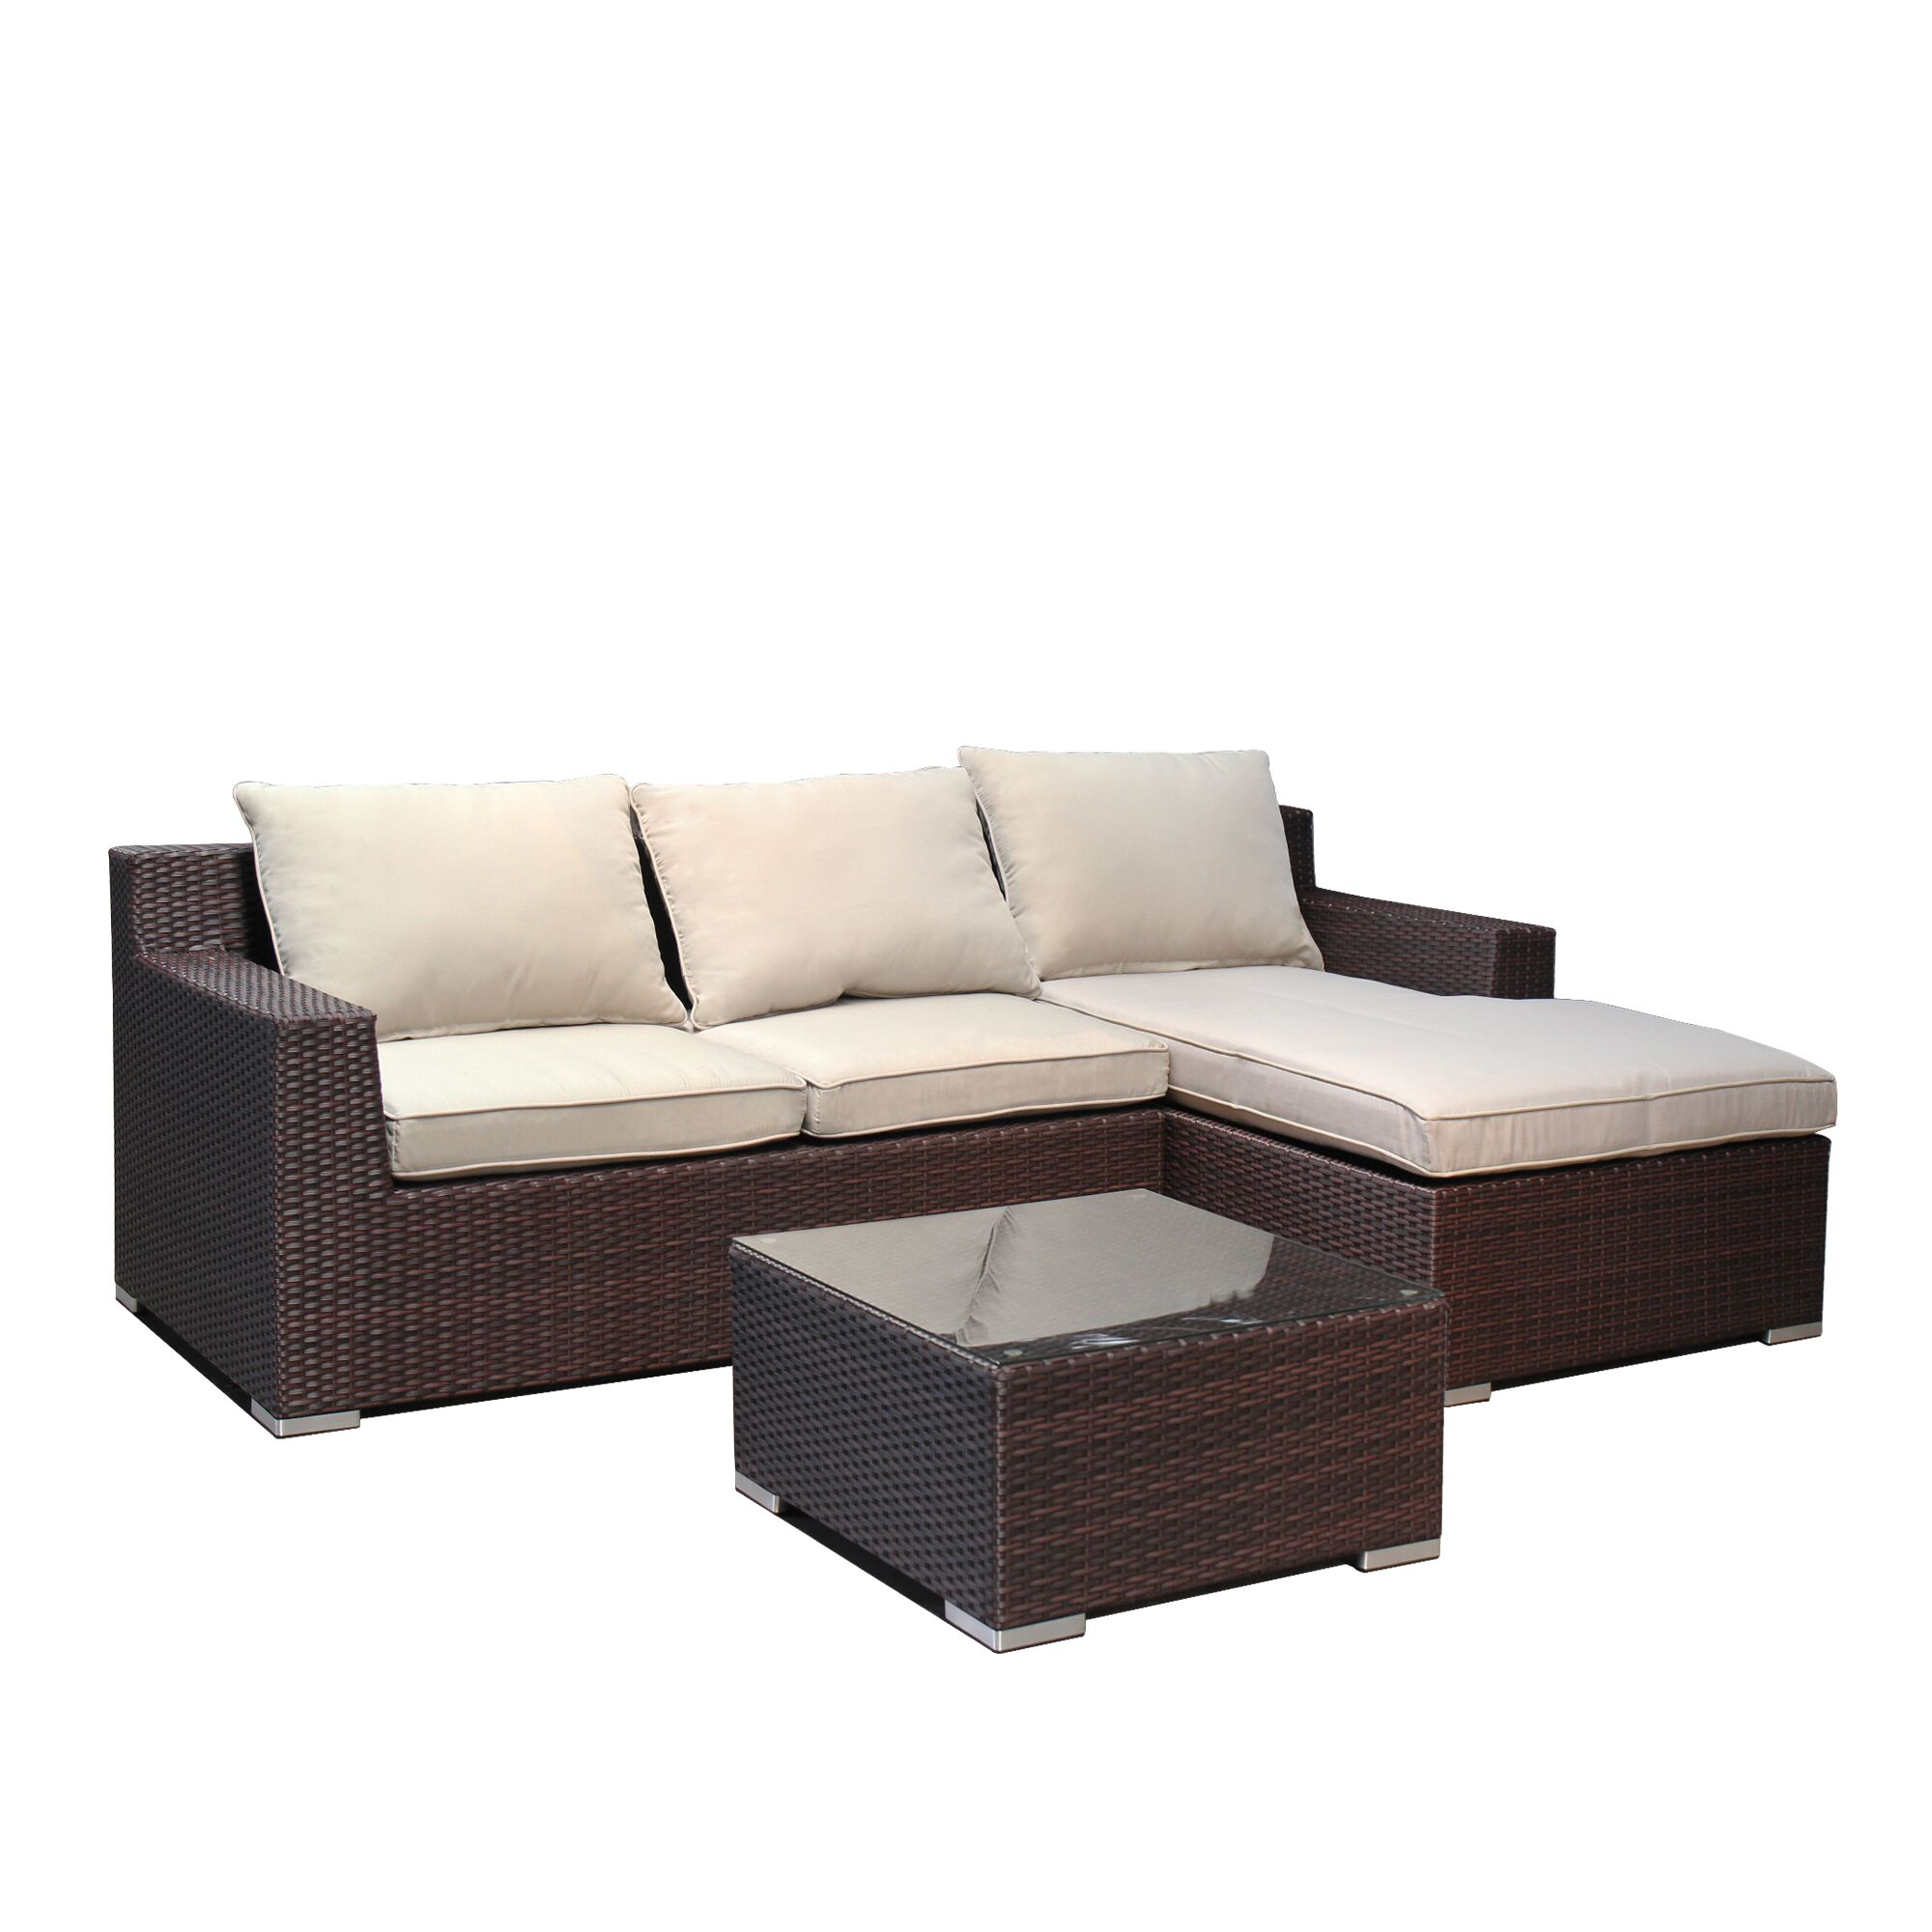 Teagan 5 Piece Rattan Sectional Set Frame Finish: Brown/Cream